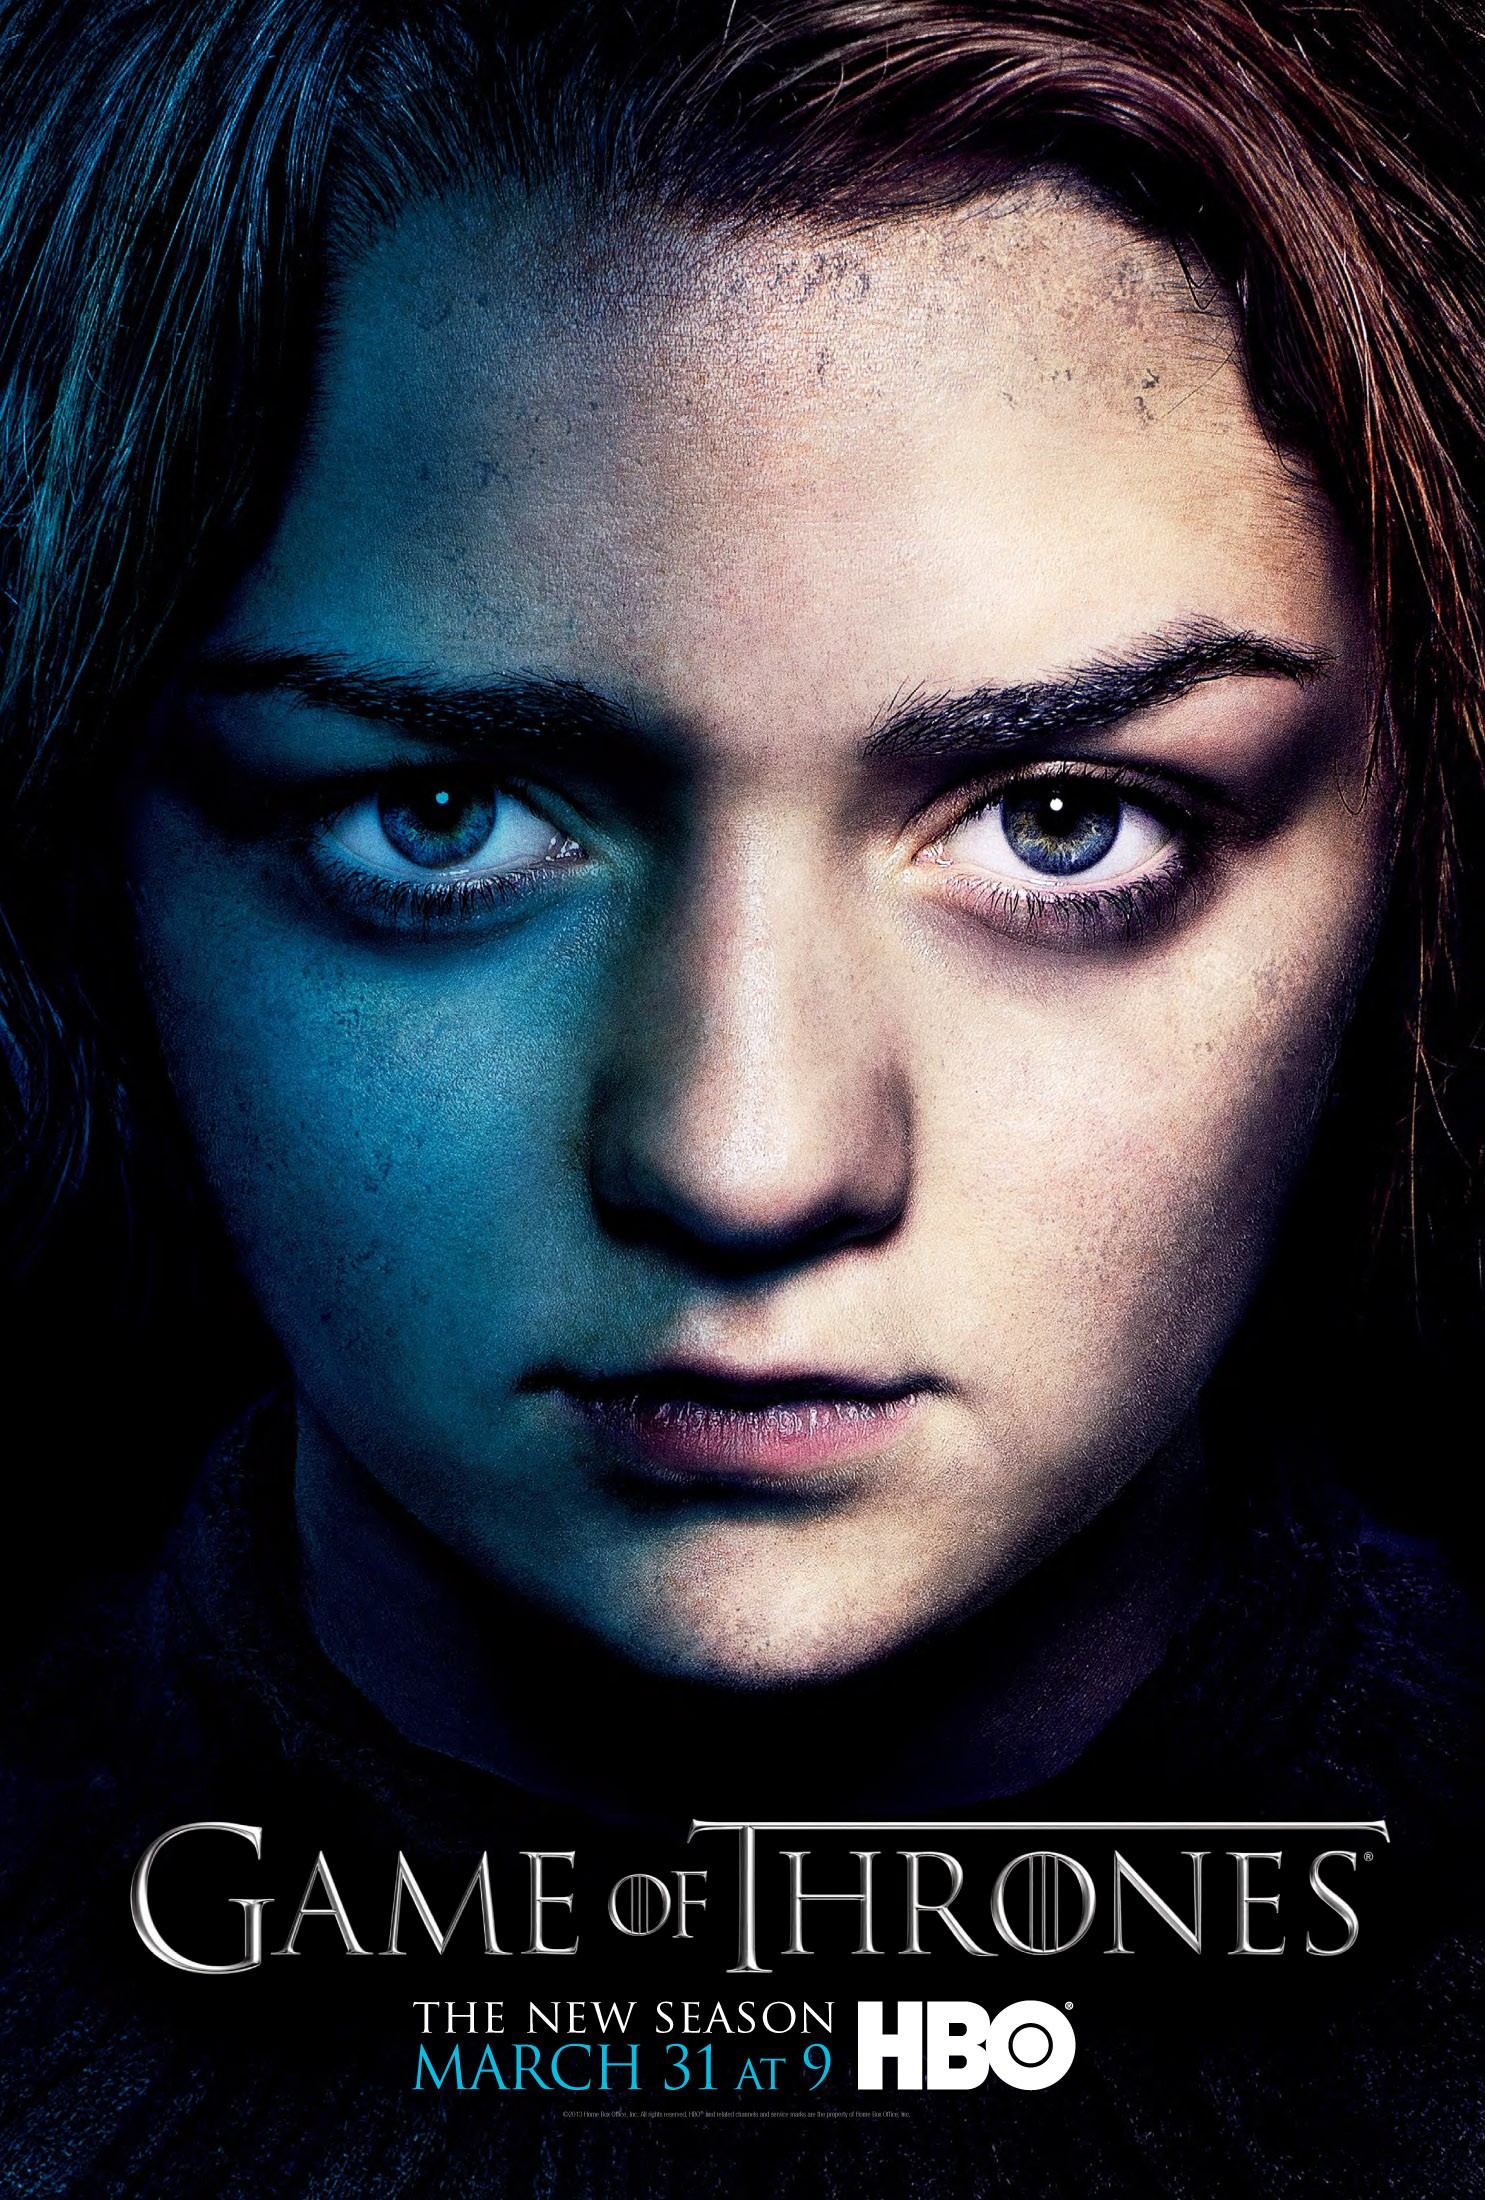 GAME OF THRONES  season 3  Maisie plays Arya Stark in this epic story. Nine noble families fight for control over the mythical lands of Westeros, while an ancient enemy returns after being dormant for thousands of years.    Click for more